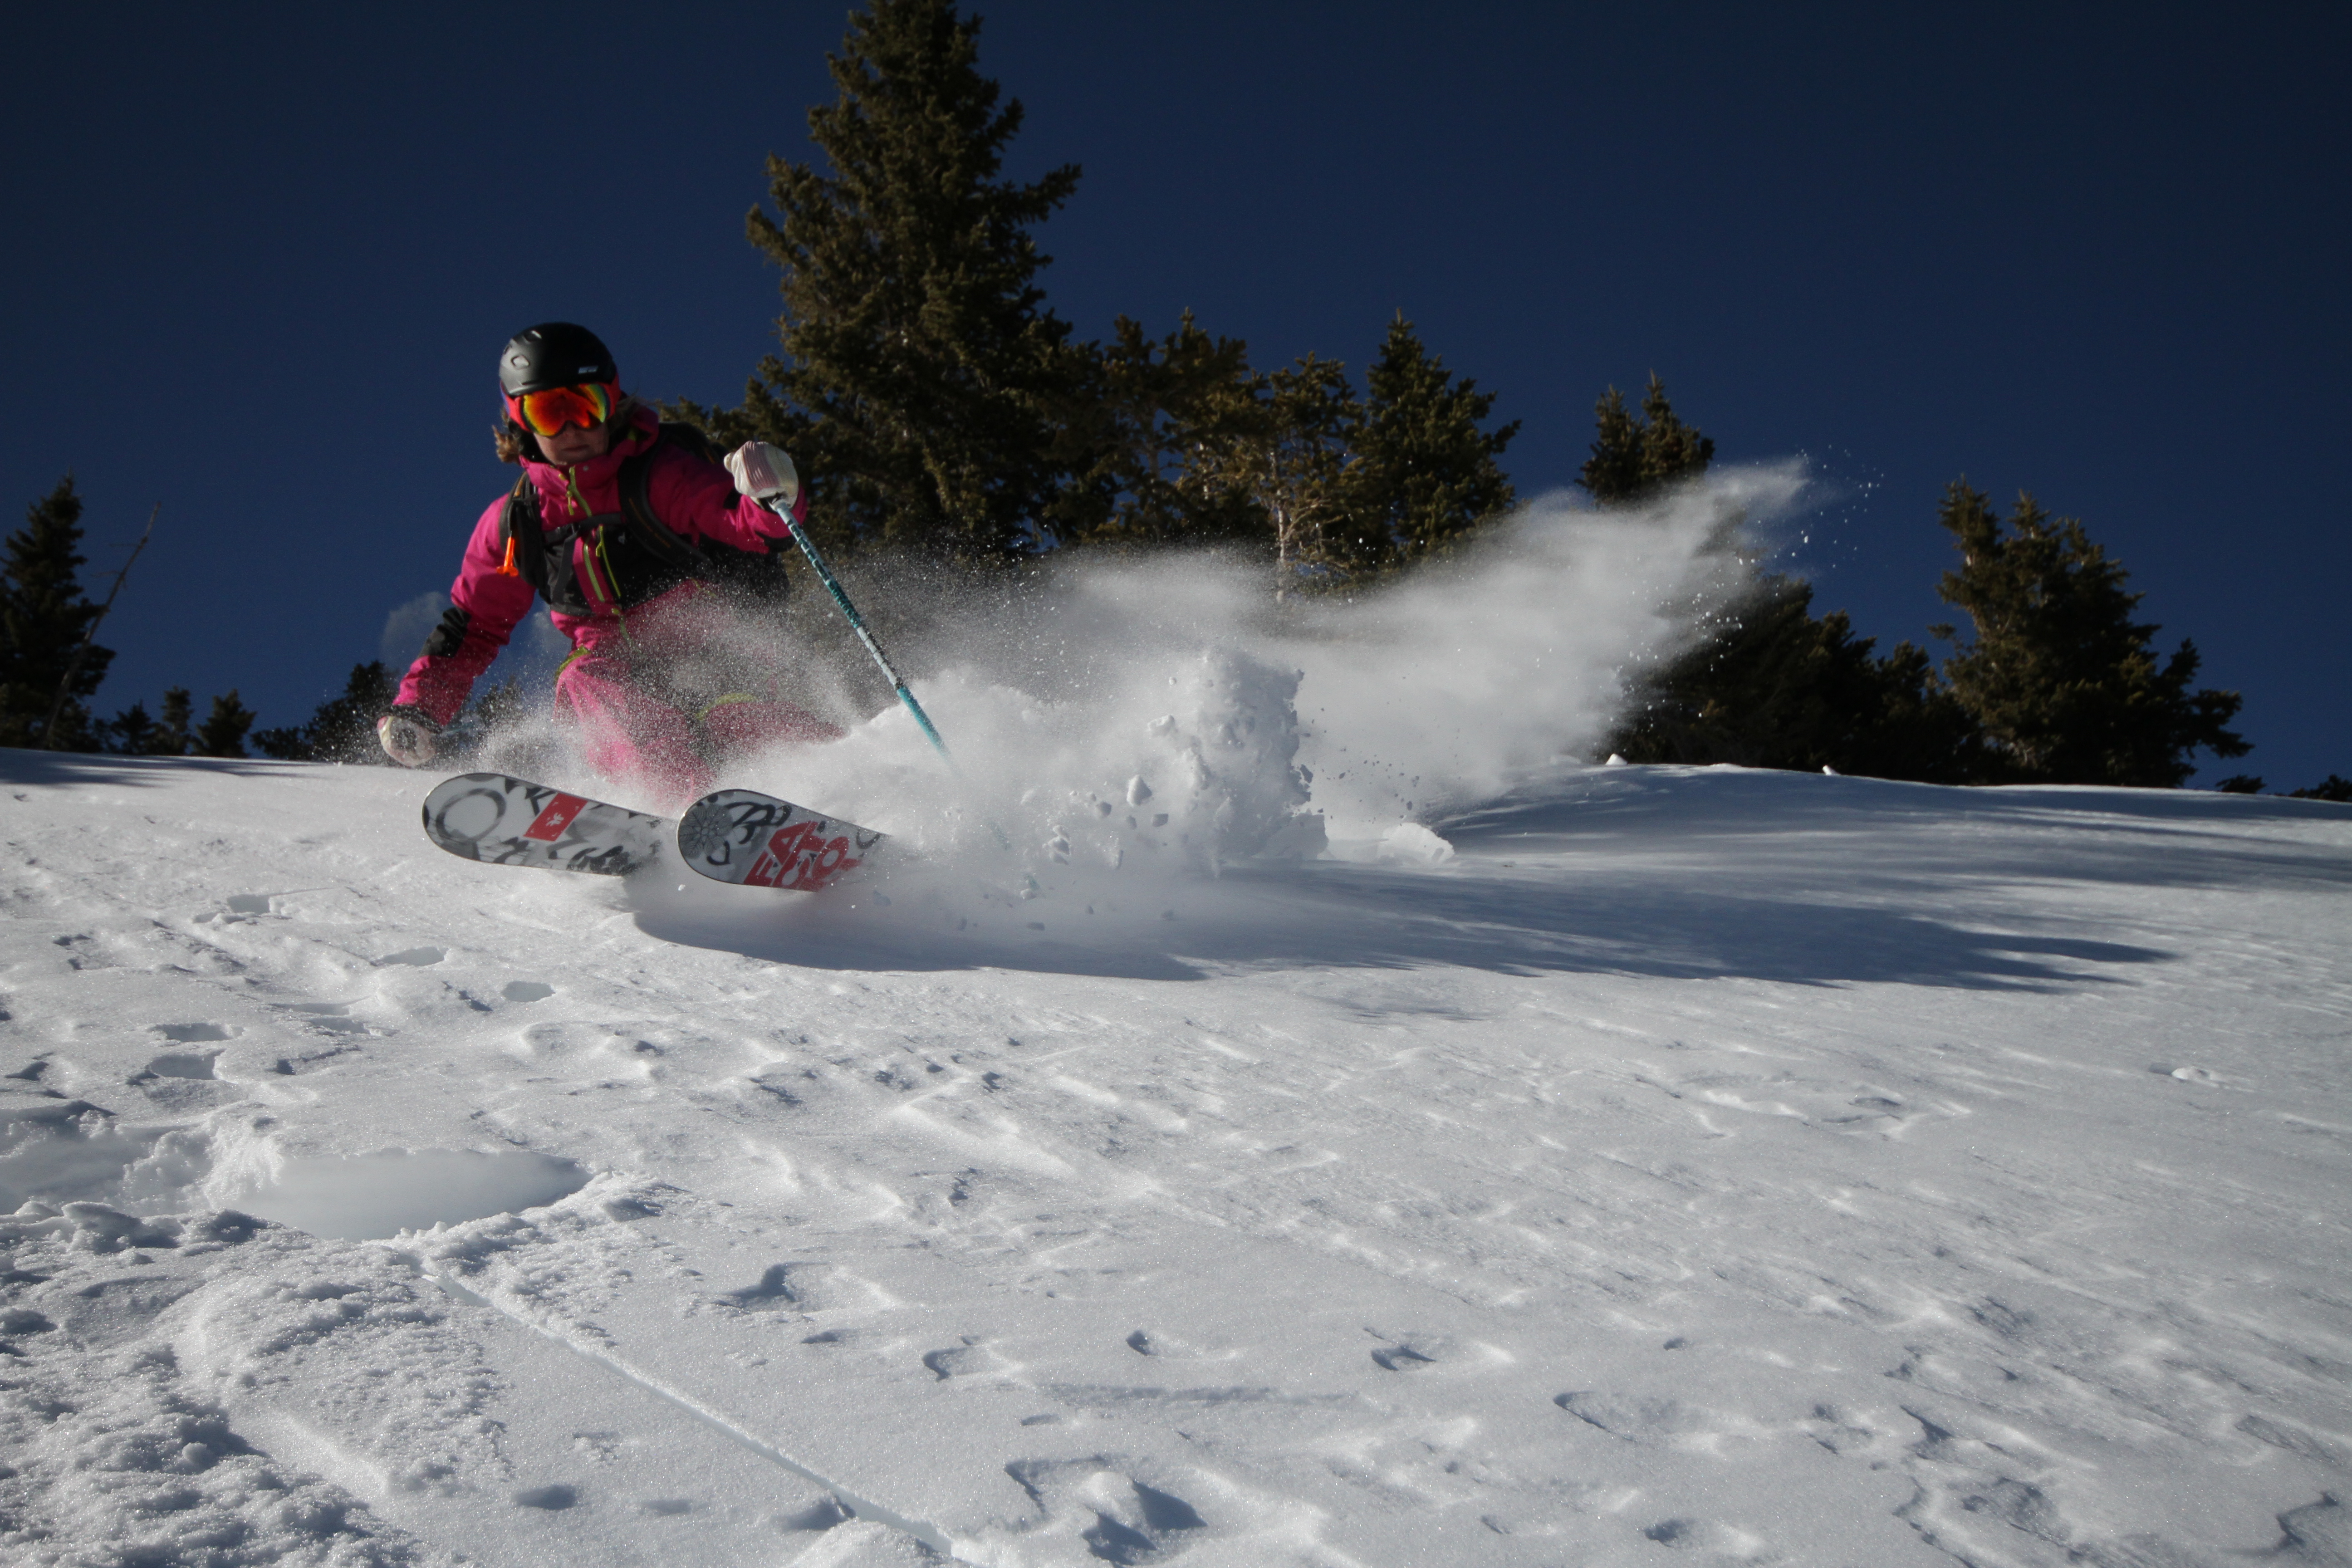 What to do in Breckenridge during Christmas - blog.breckenridge.com